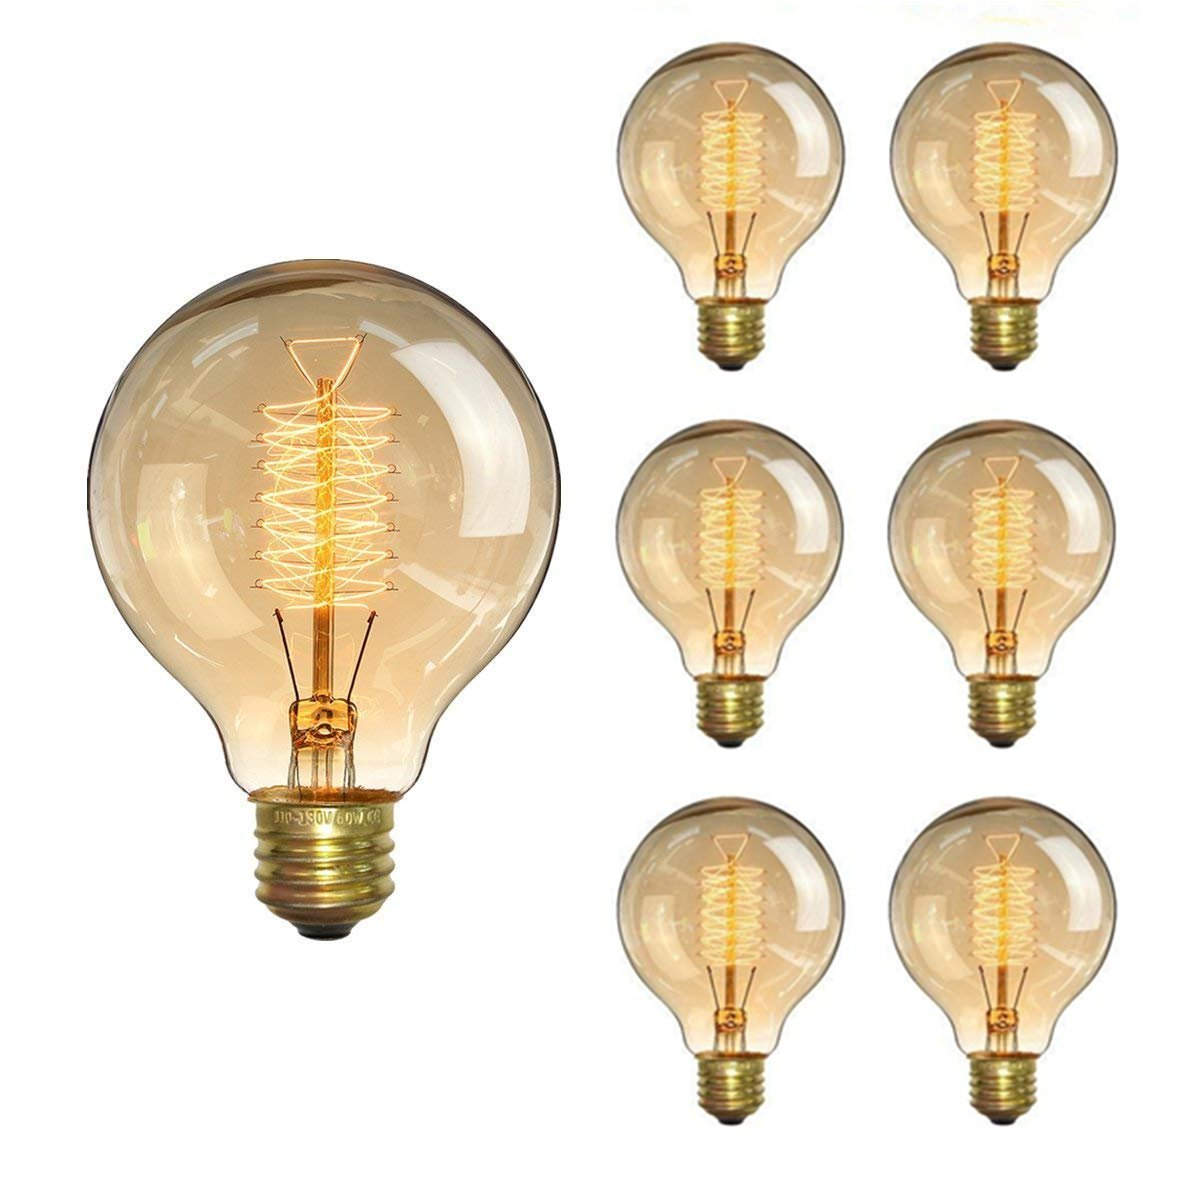 KINGSO Vintage Edison Bulb 60W Incandescent Antique Light Bulb Dimmable Squirrel Cage Filament E26 Base G80 110V (6 Pack)